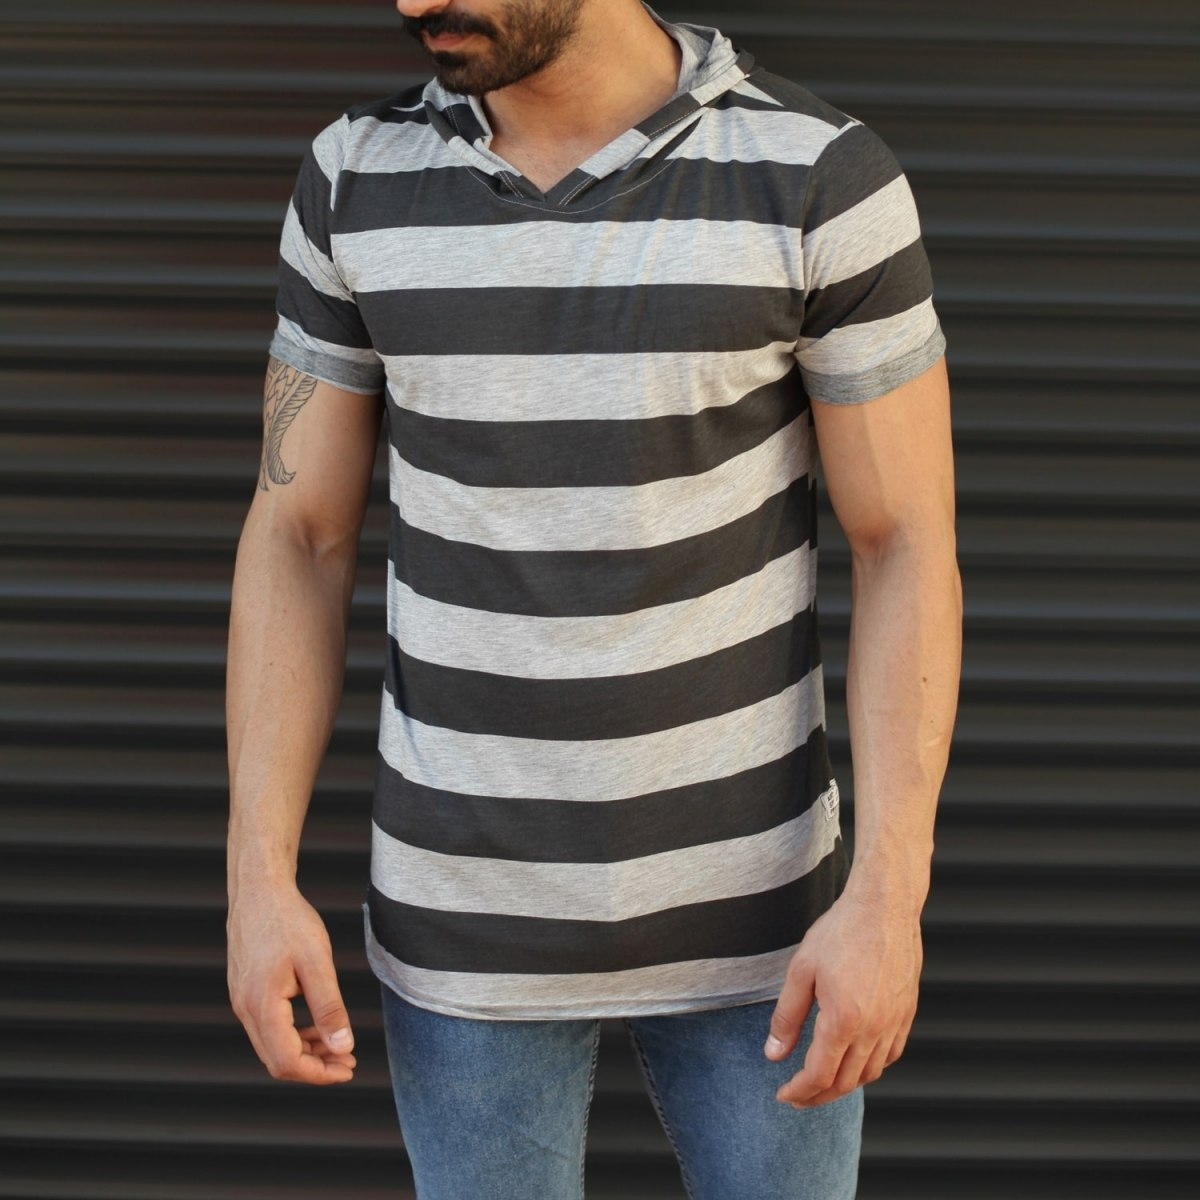 Men's Hooded Longline Thick Striped T-Shirt Gray